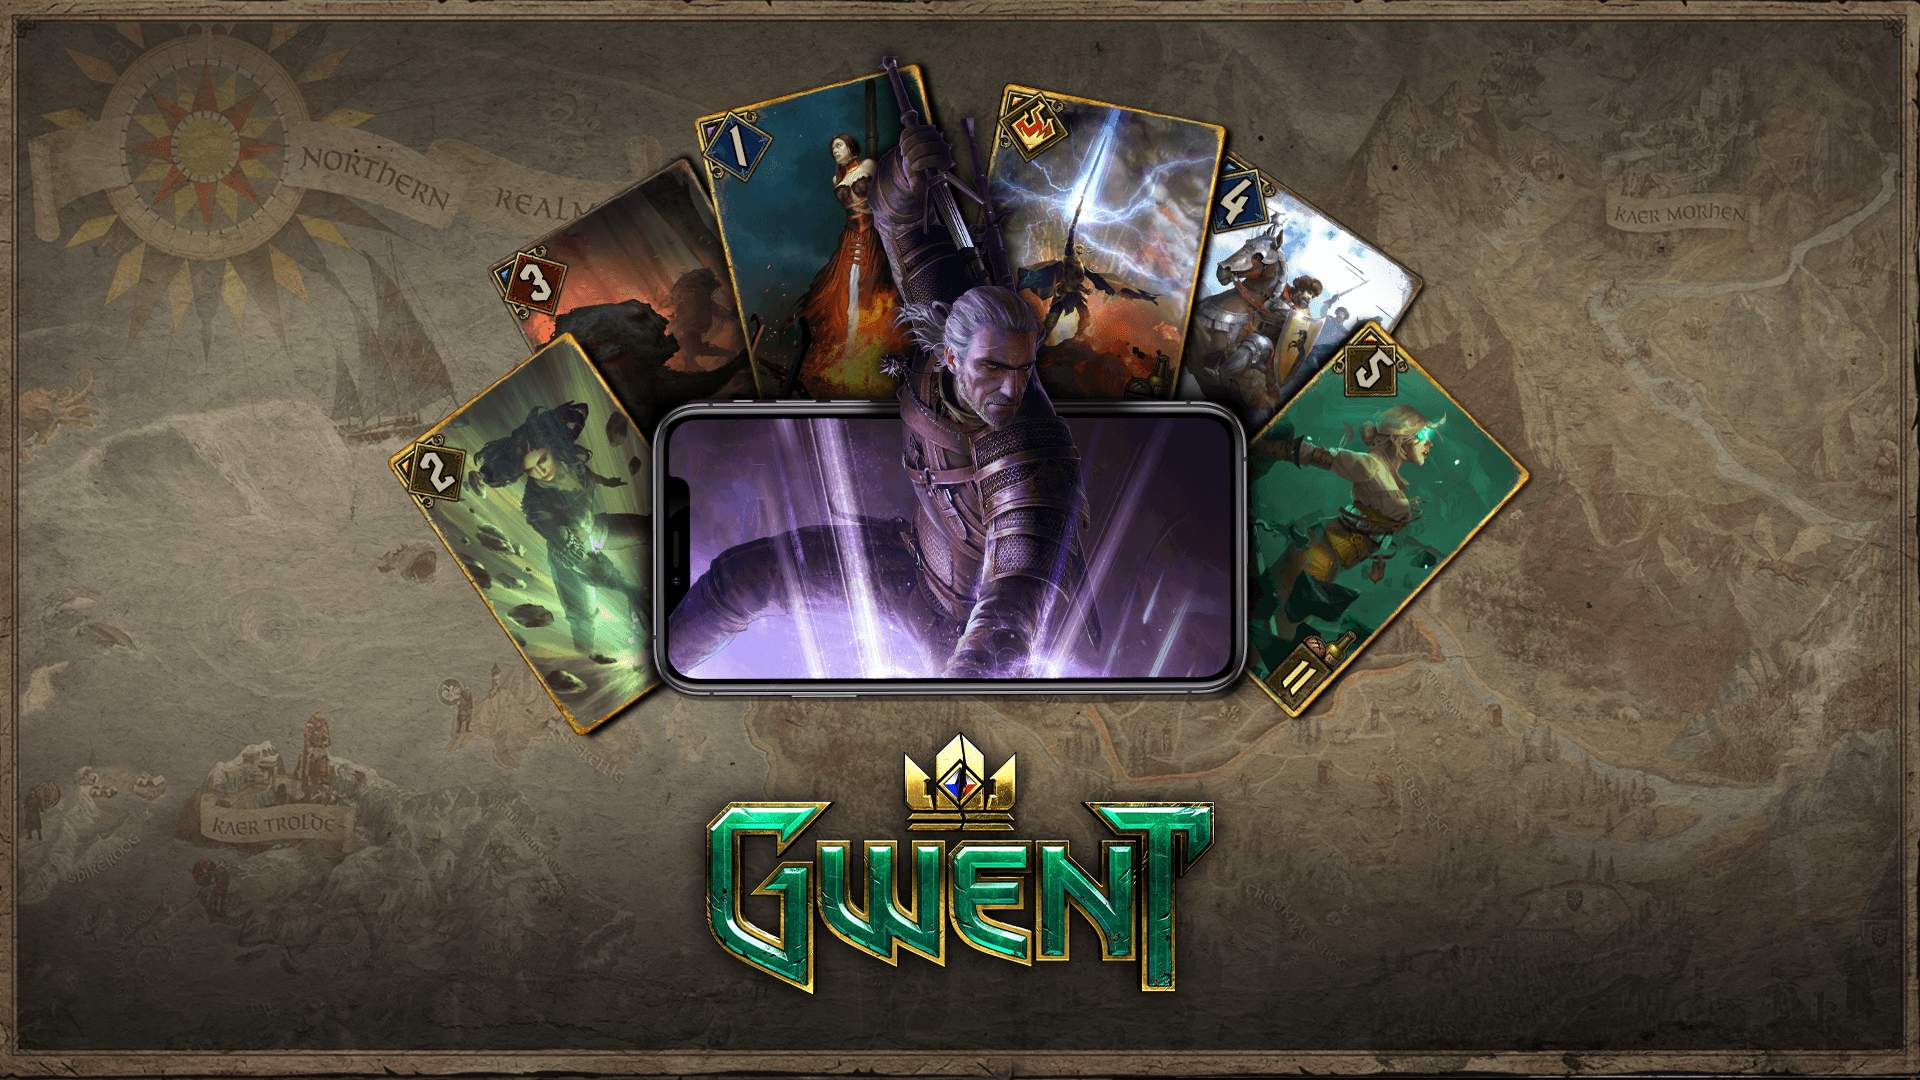 GWENT: The Witcher Card Game Now Available Free on iOS With Launch Bonuses